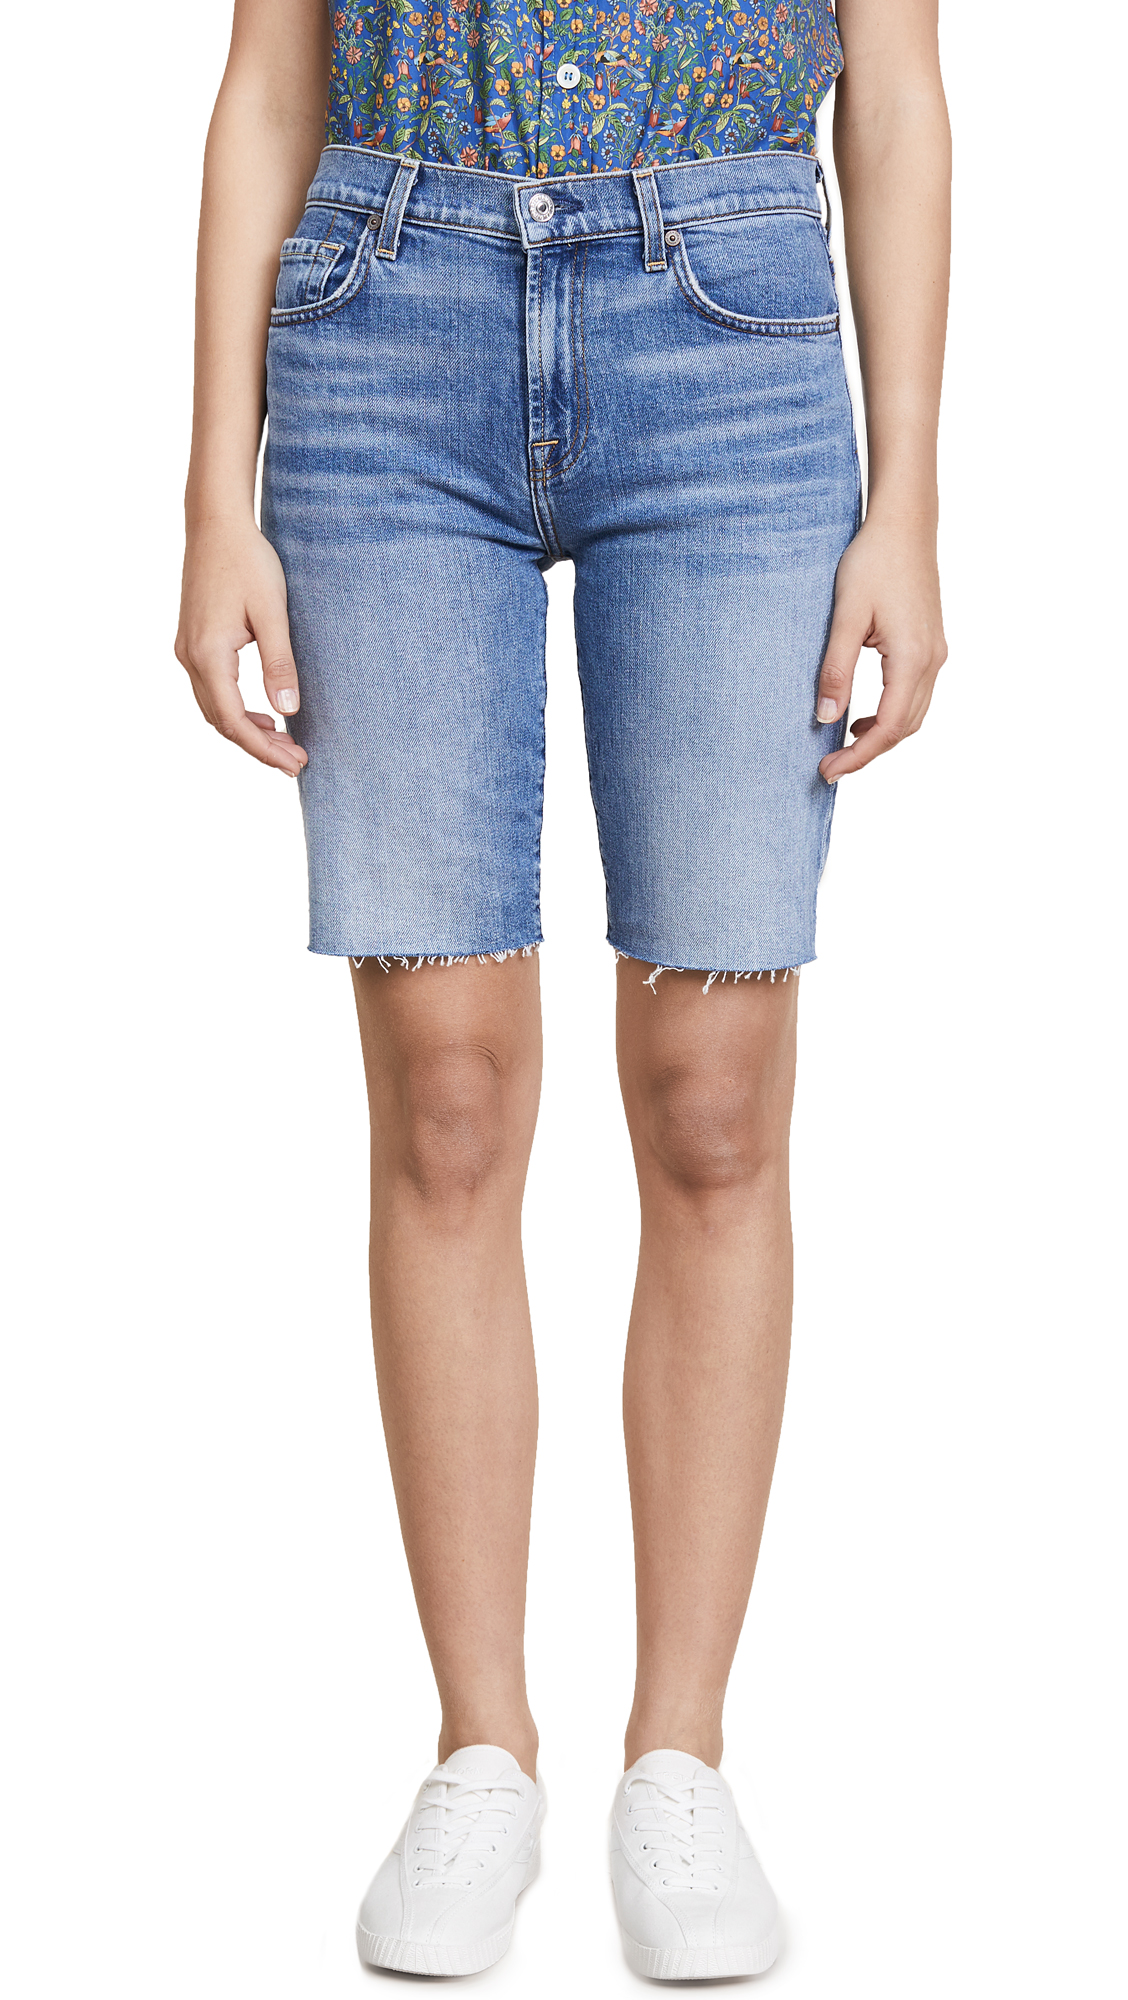 7 For All Mankind High Waist Bermuda Shorts